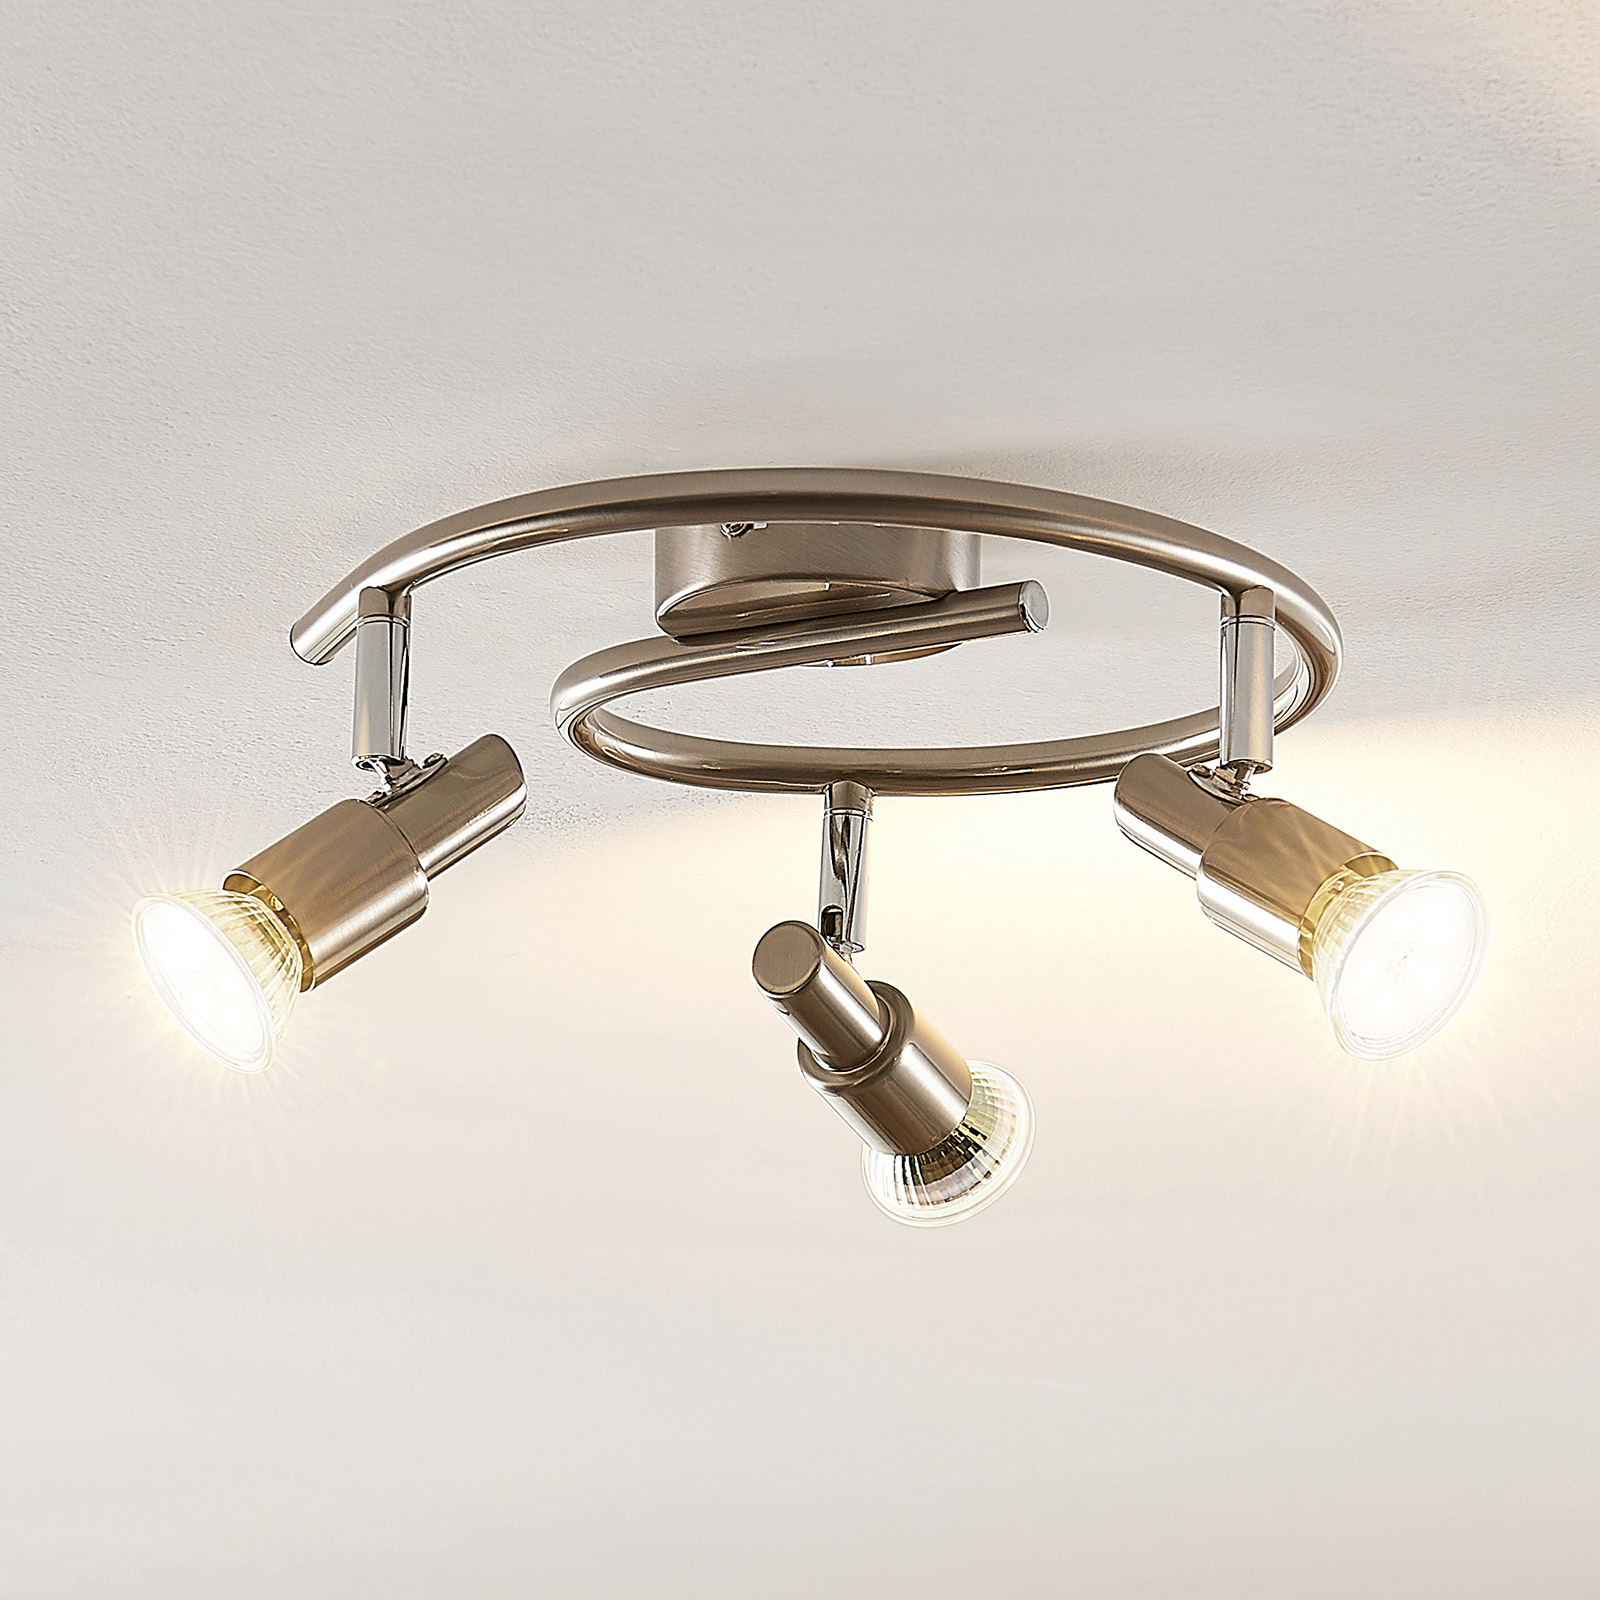 ELC Farida LED-Deckenlampe, nickel, 3-flammig